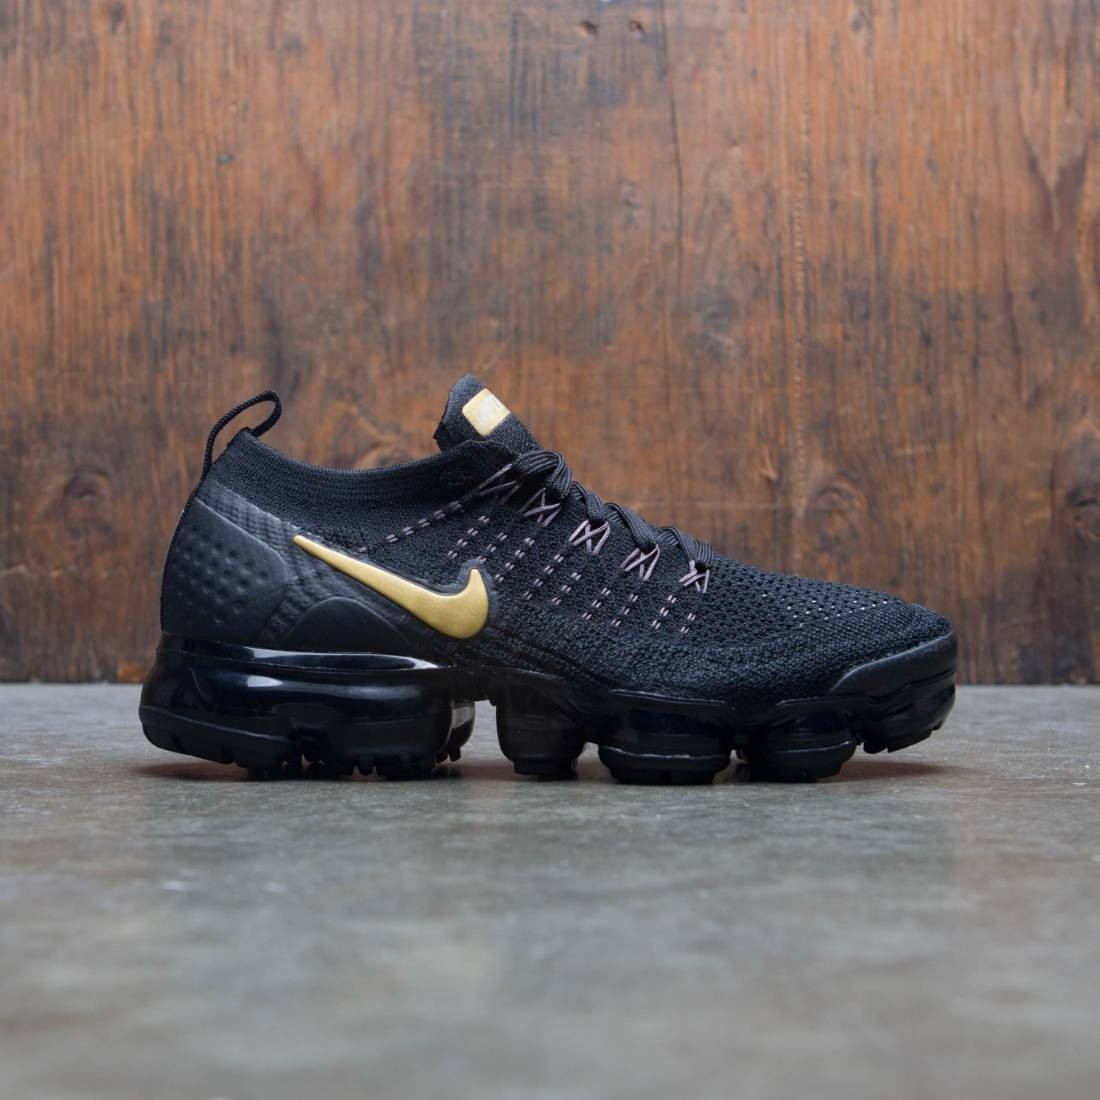 75fdc1f335 nike women air vapormax flyknit 2 black metallic gold mtlc platinum